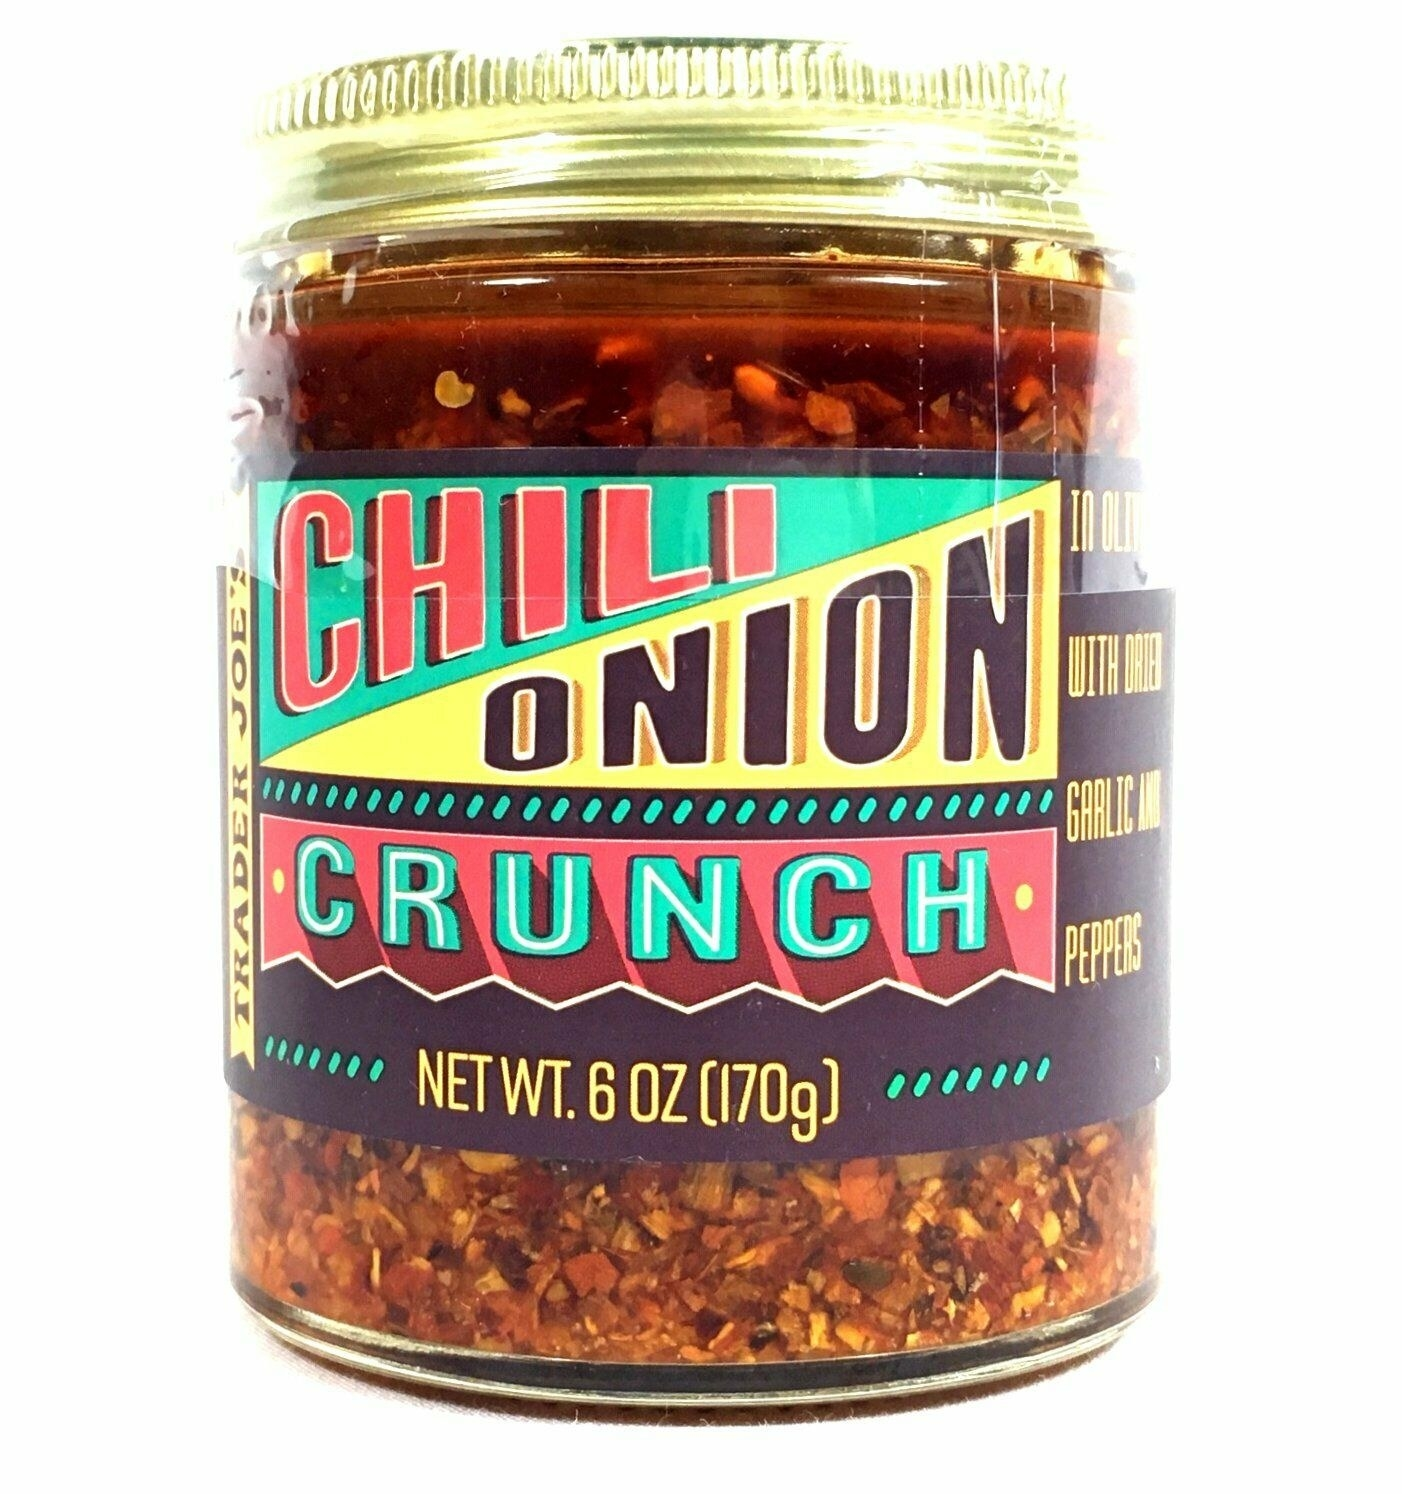 Jar of Trader Joe's Chili Onion Crunch